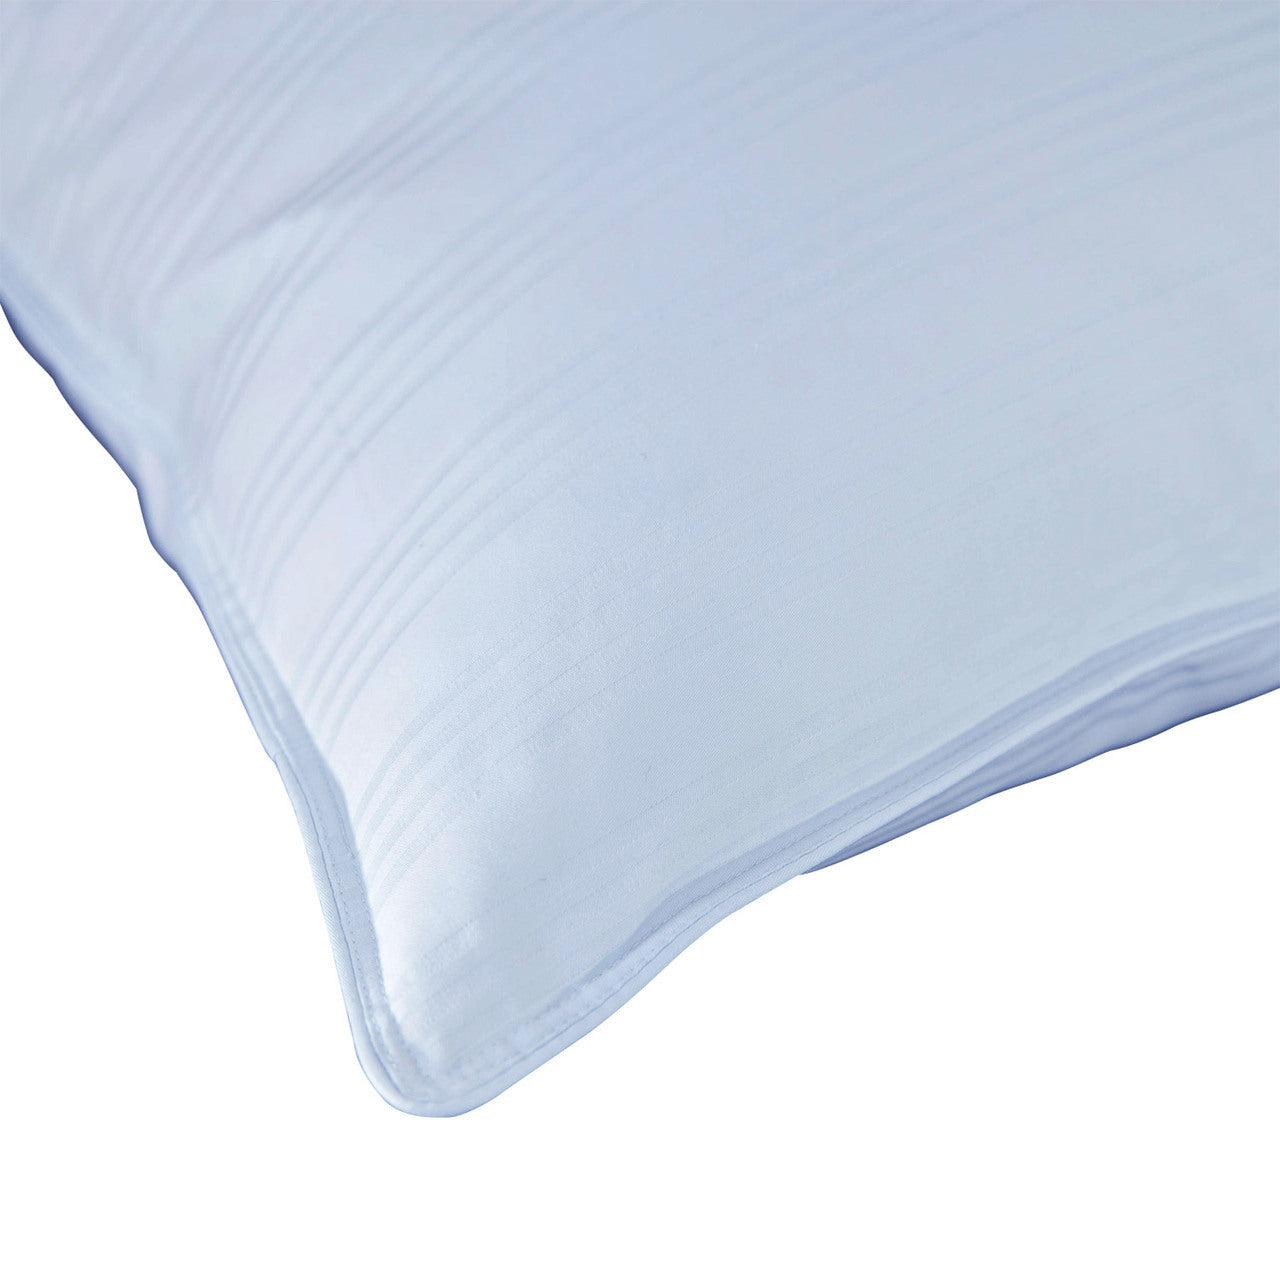 EXTRA SOFT DOWN PILLOW - VERY FLAT